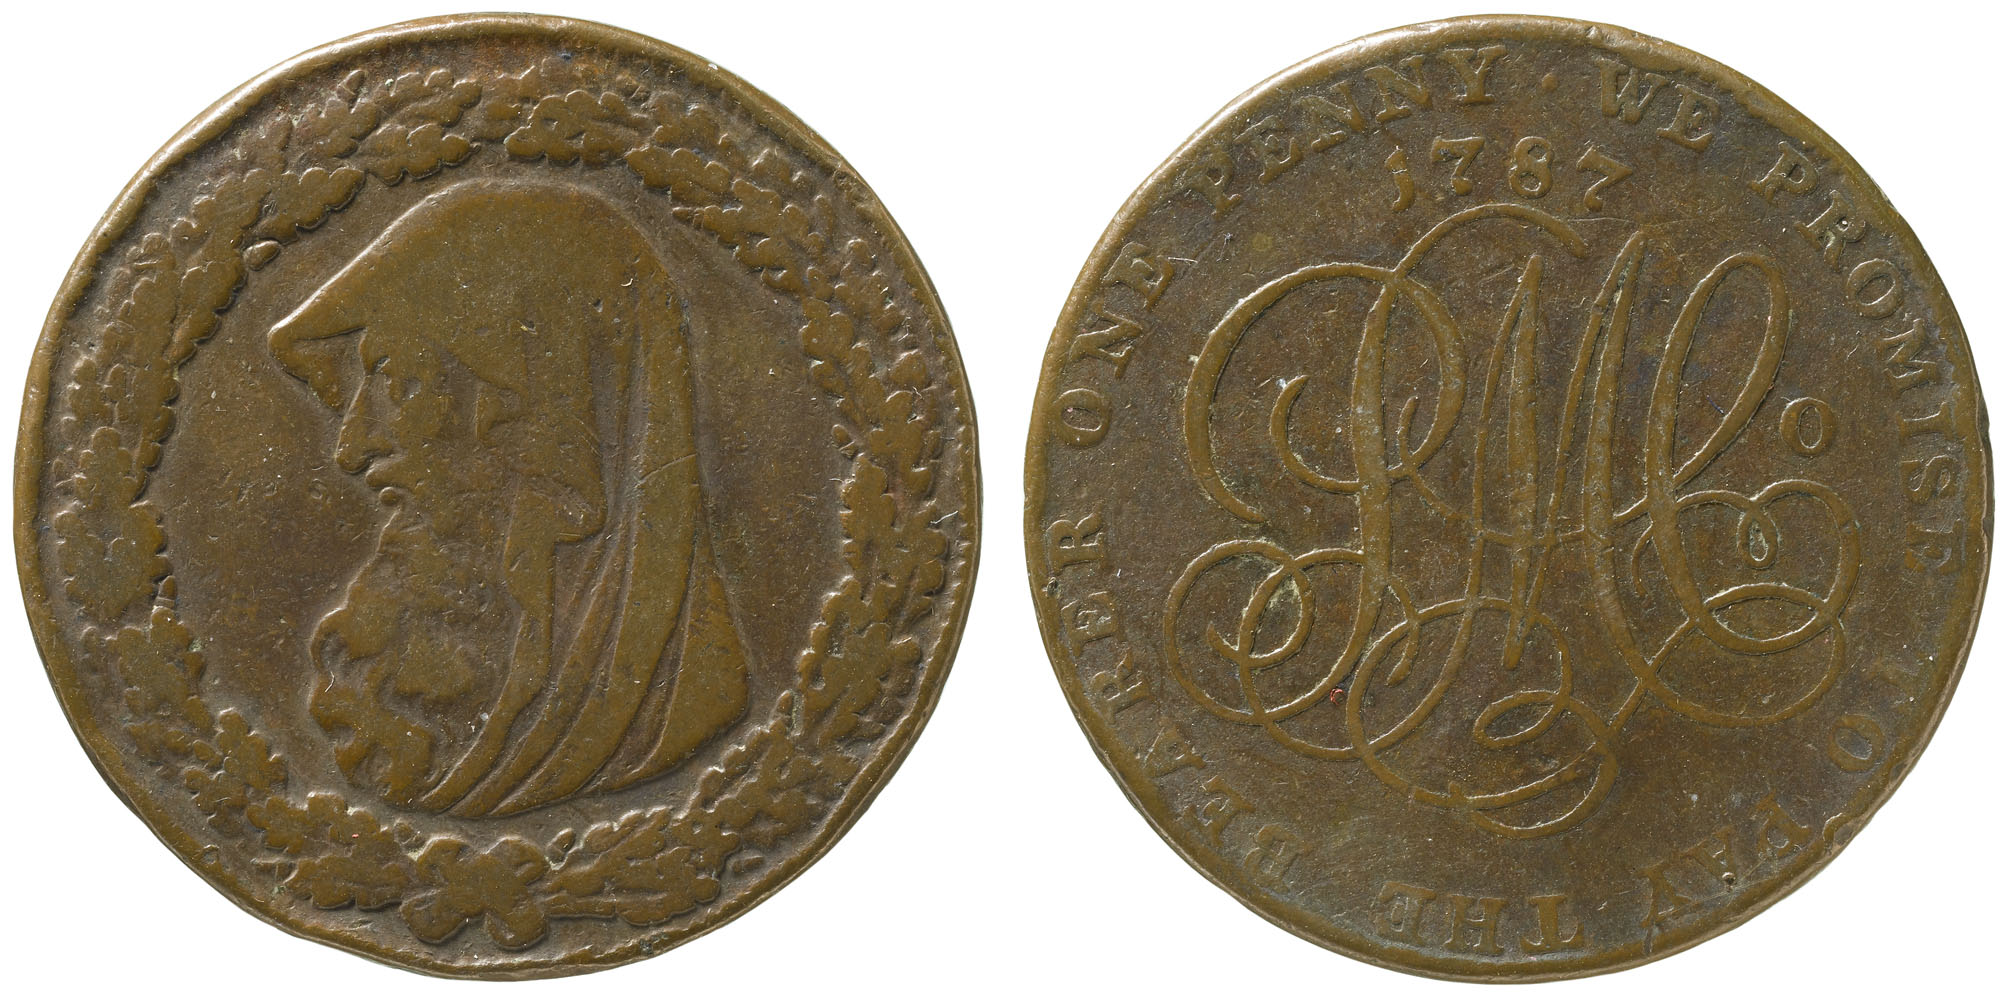 a photo of both sides of a brownish bronze coloured token with a hooded figure in profile